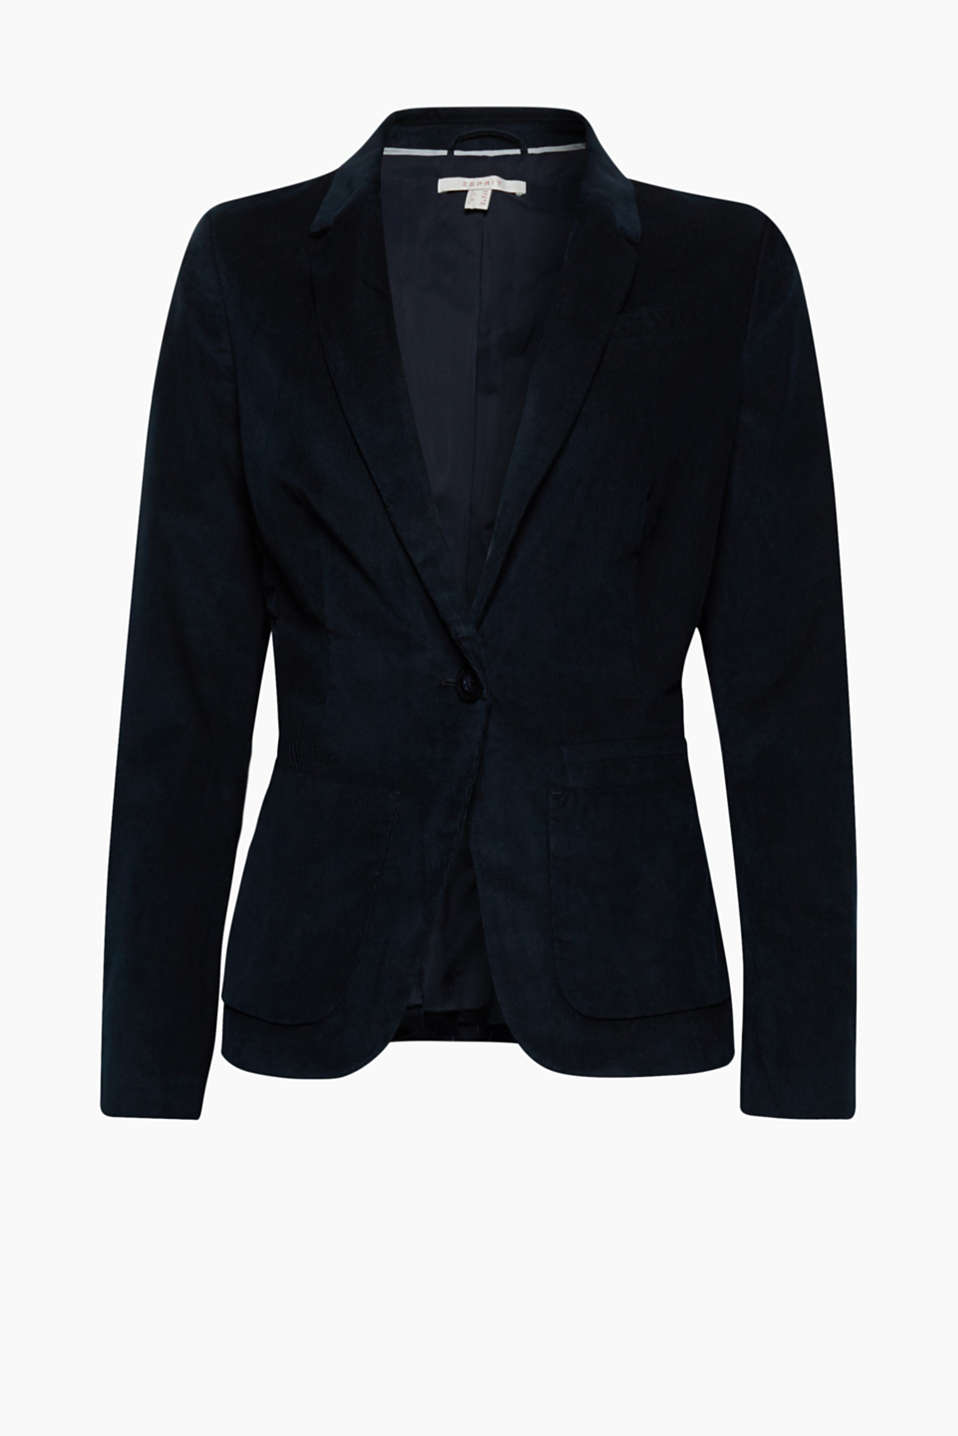 Casual or chic - this needlecord blazer with a feminine fit is wonderfully versatile thanks to its ambiguous look!